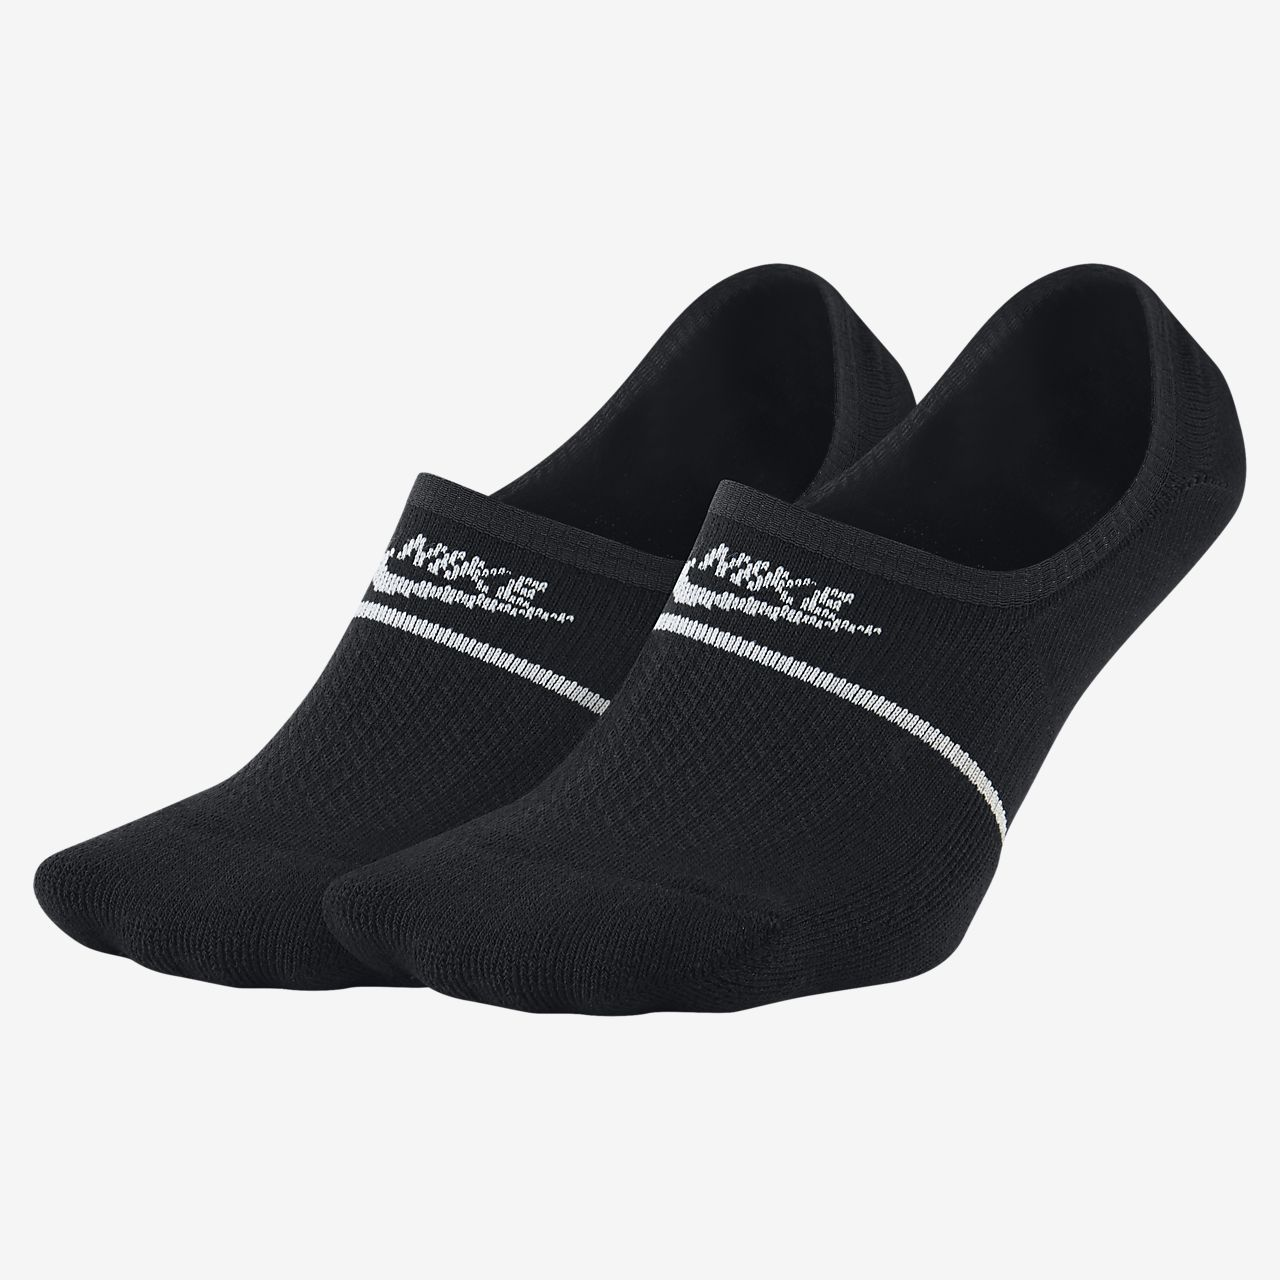 Calcetines invisibles Nike SNKR Sox Essential (2 pares)